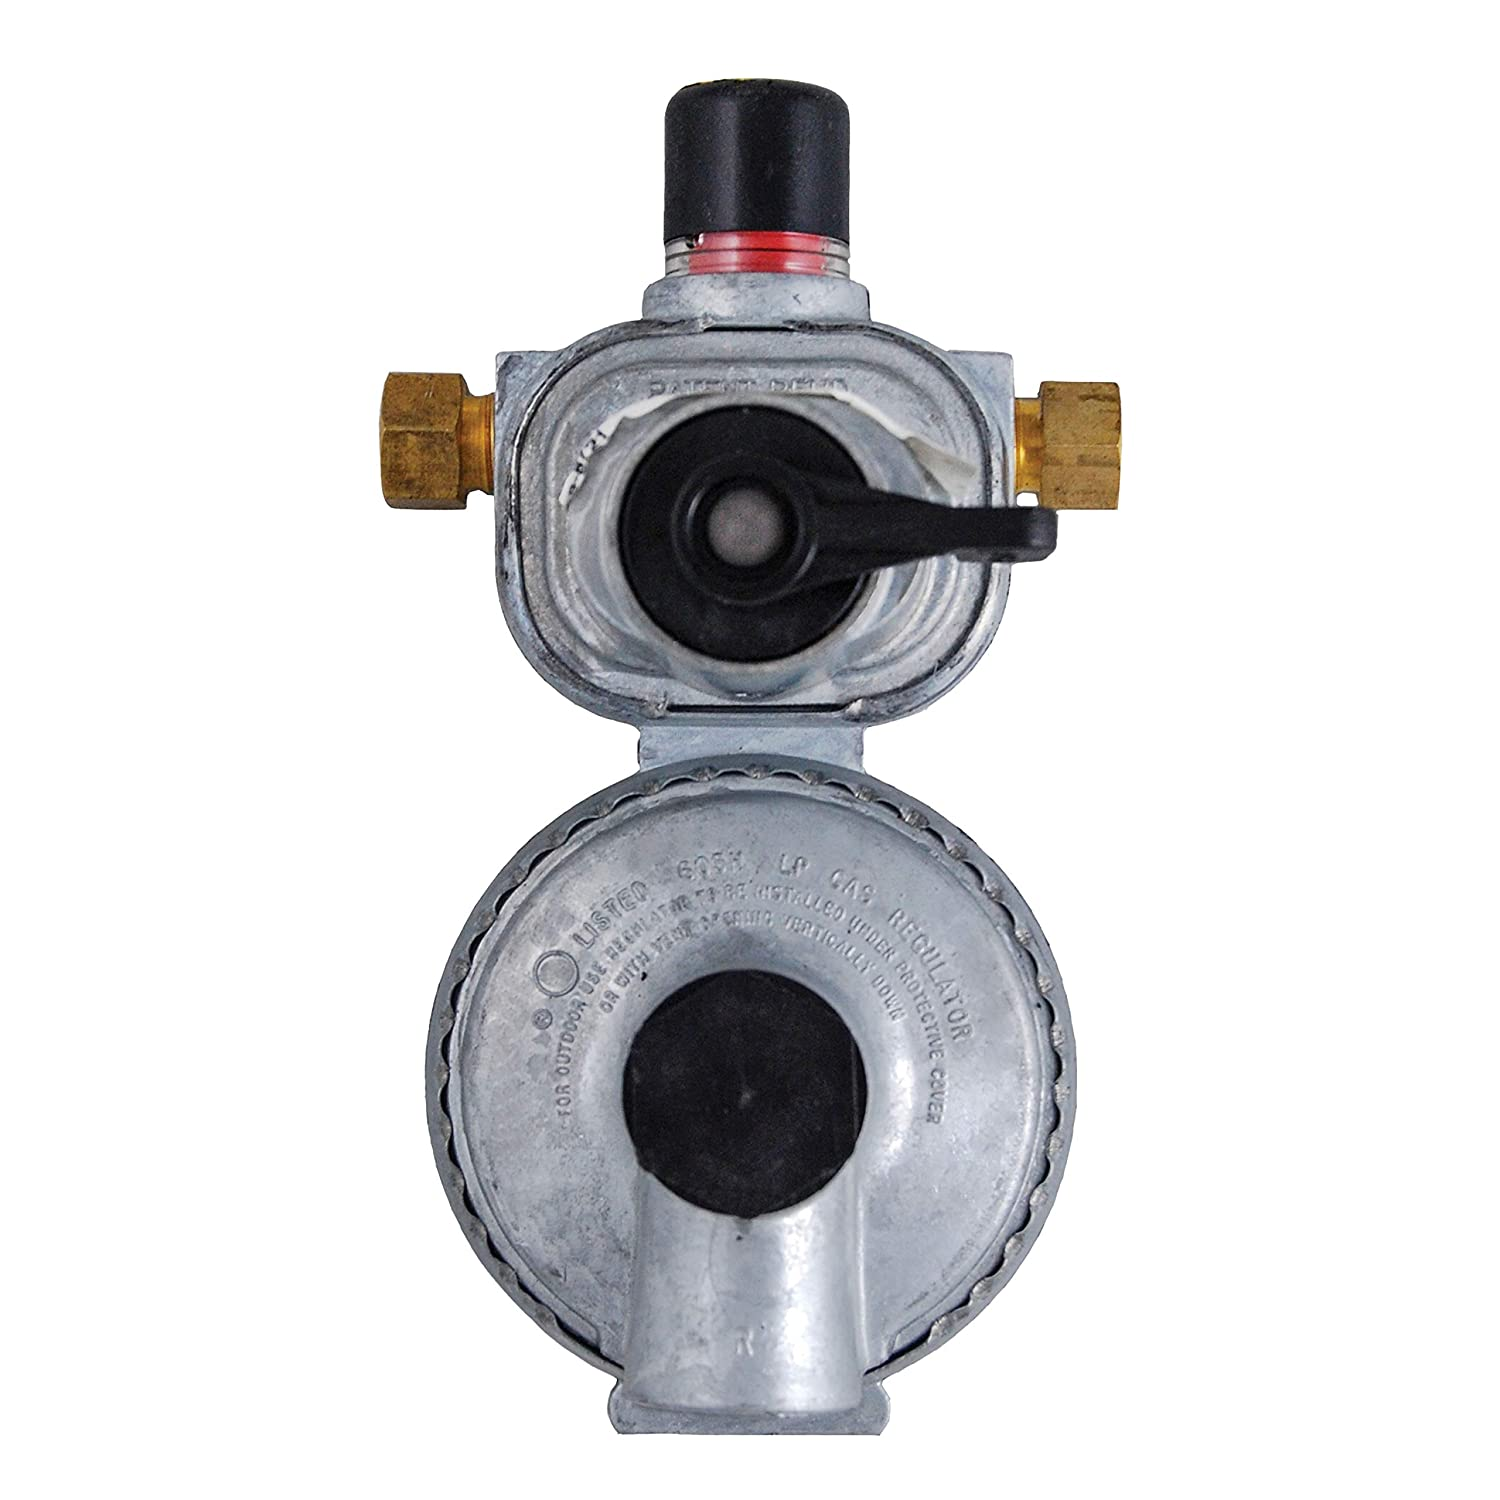 Marshall Excelsior Propane Regulator